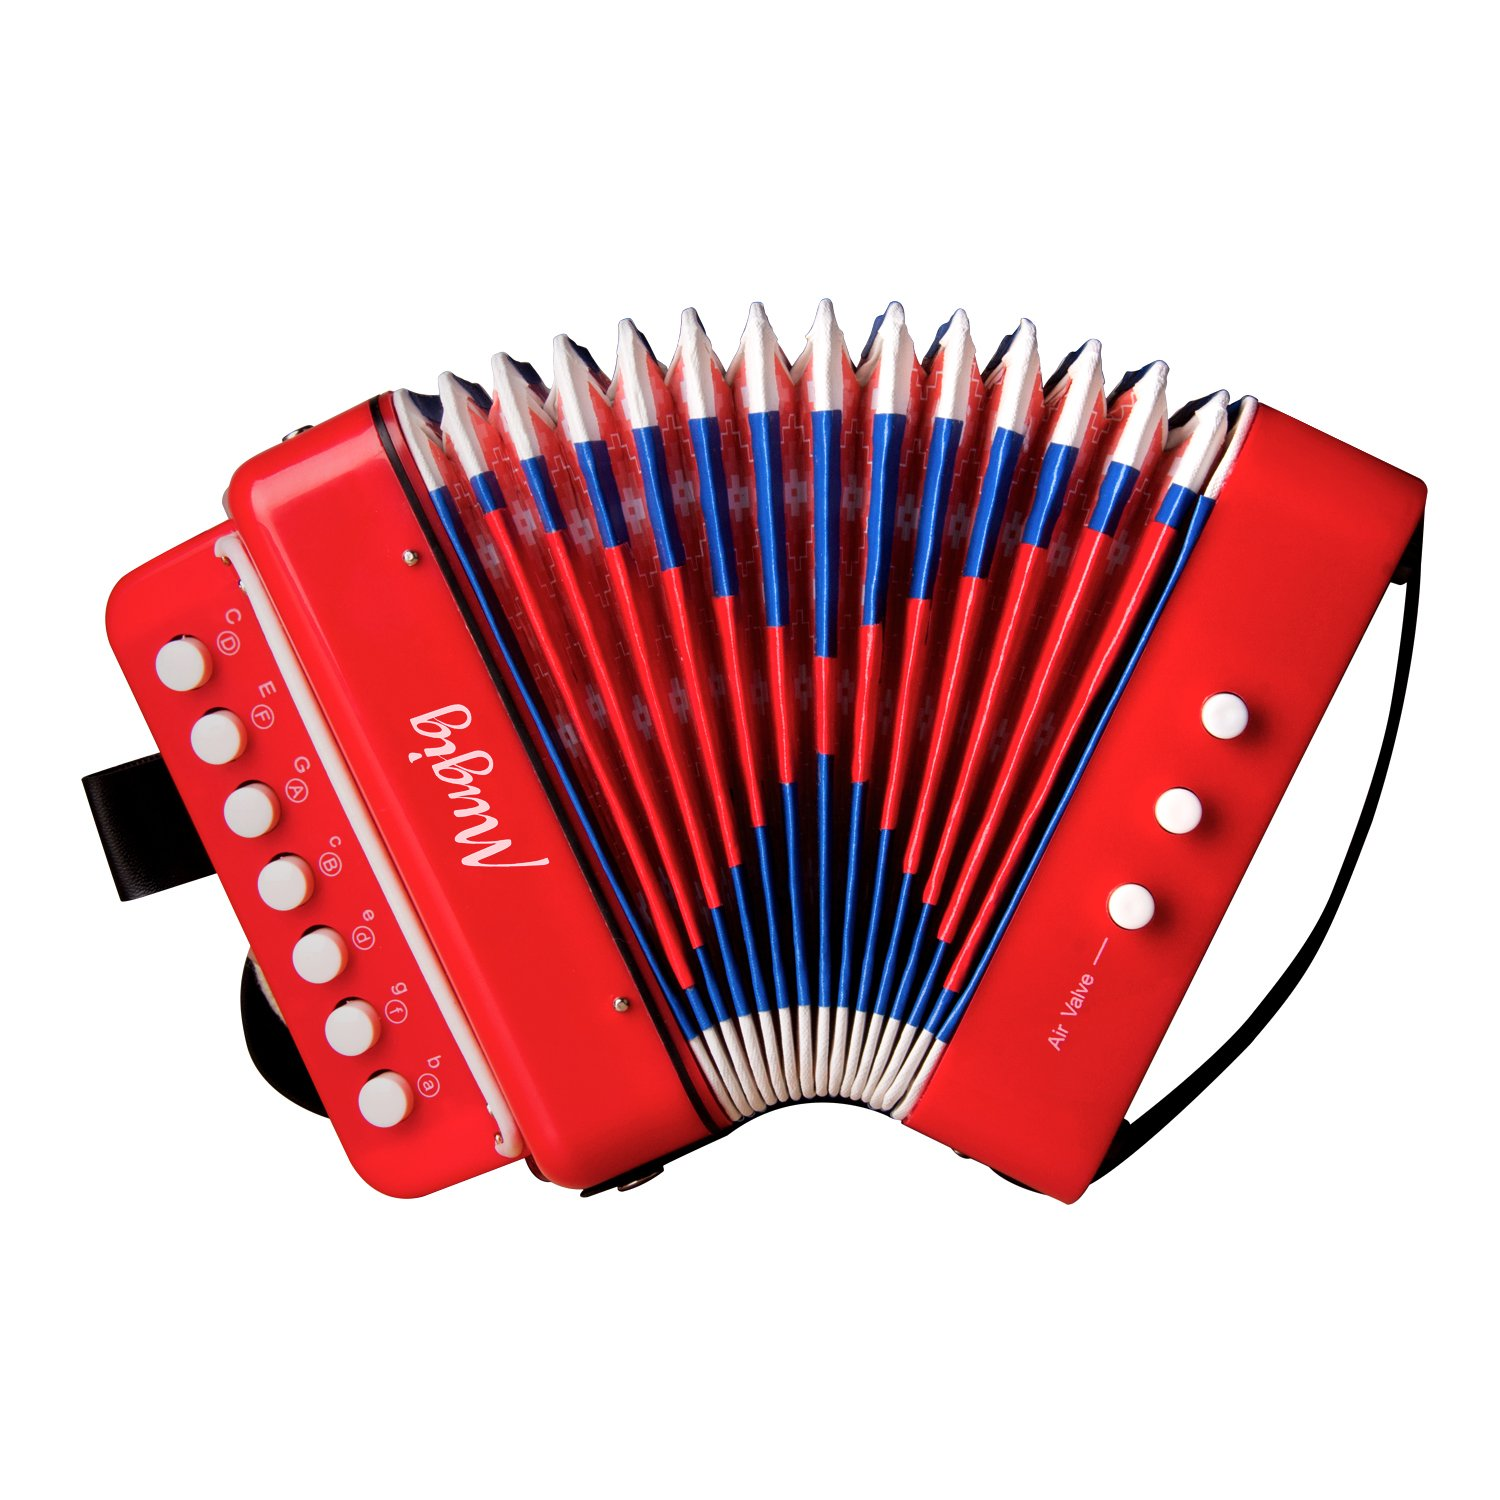 Accordion, Mugig Kids Accordion, Ten Keys Toy Accordion, Solo and Ensemble Instrument, Musical Instrument for Early Childhood Teaching (white) MK1